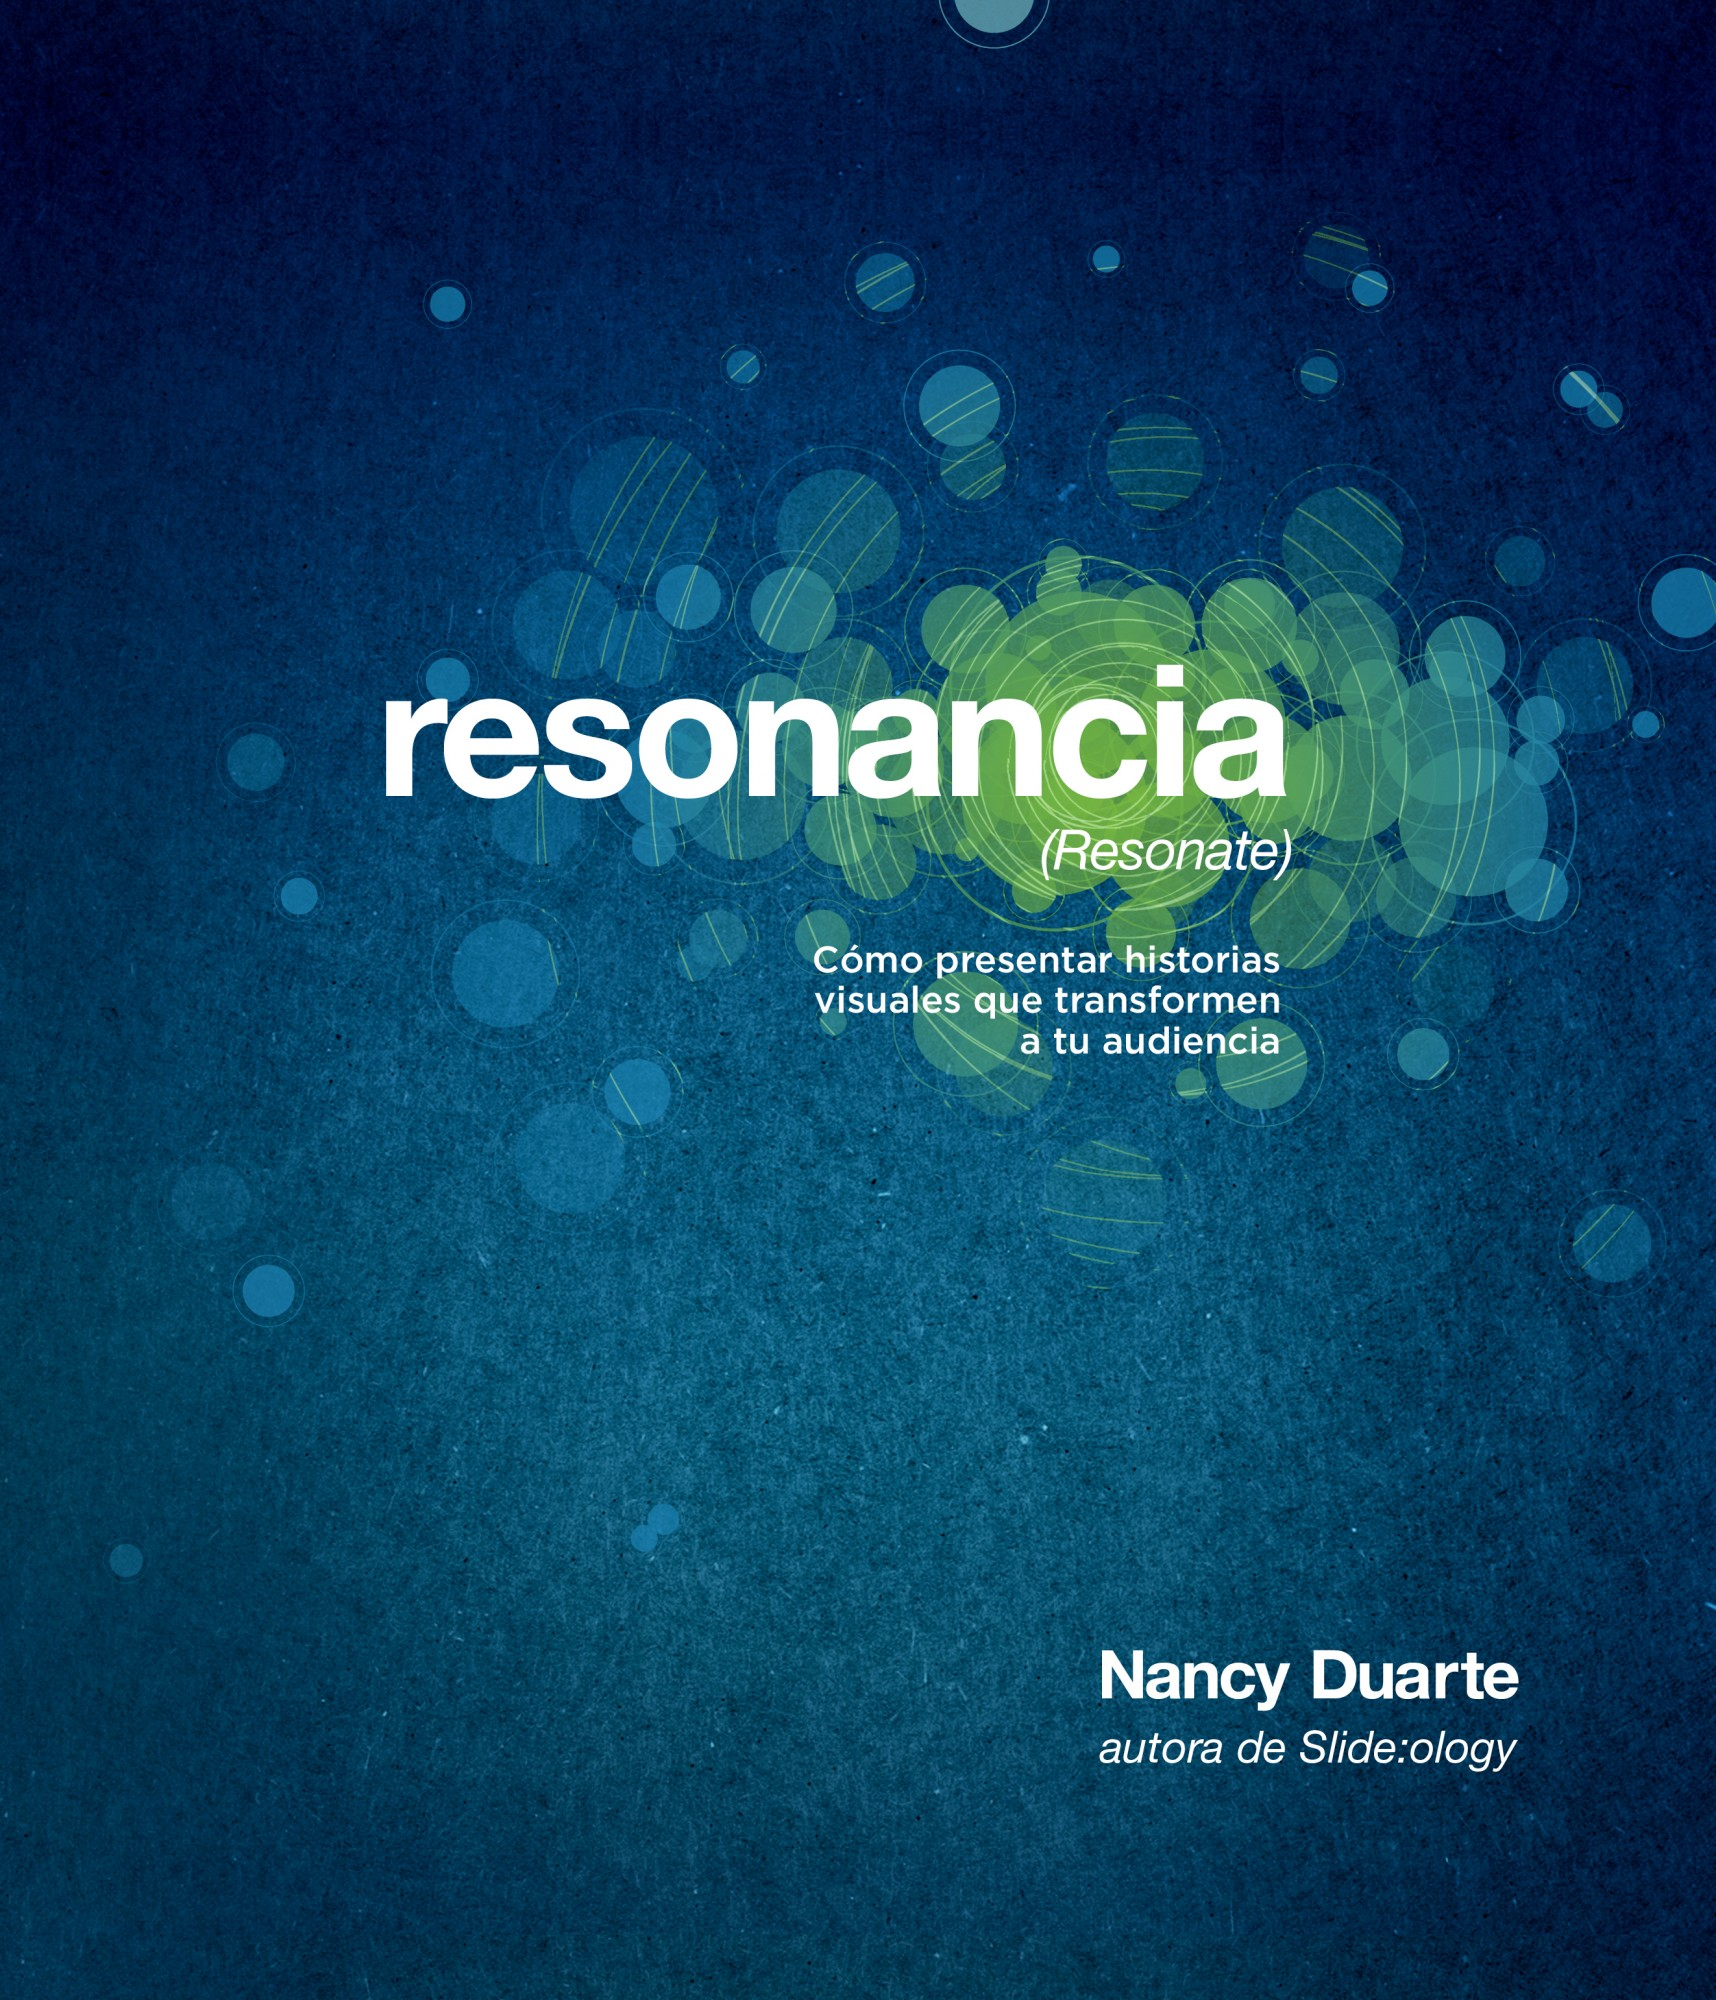 Resonancia (resonate). Cómo presentar historias visuales que transformen a tu audiencia